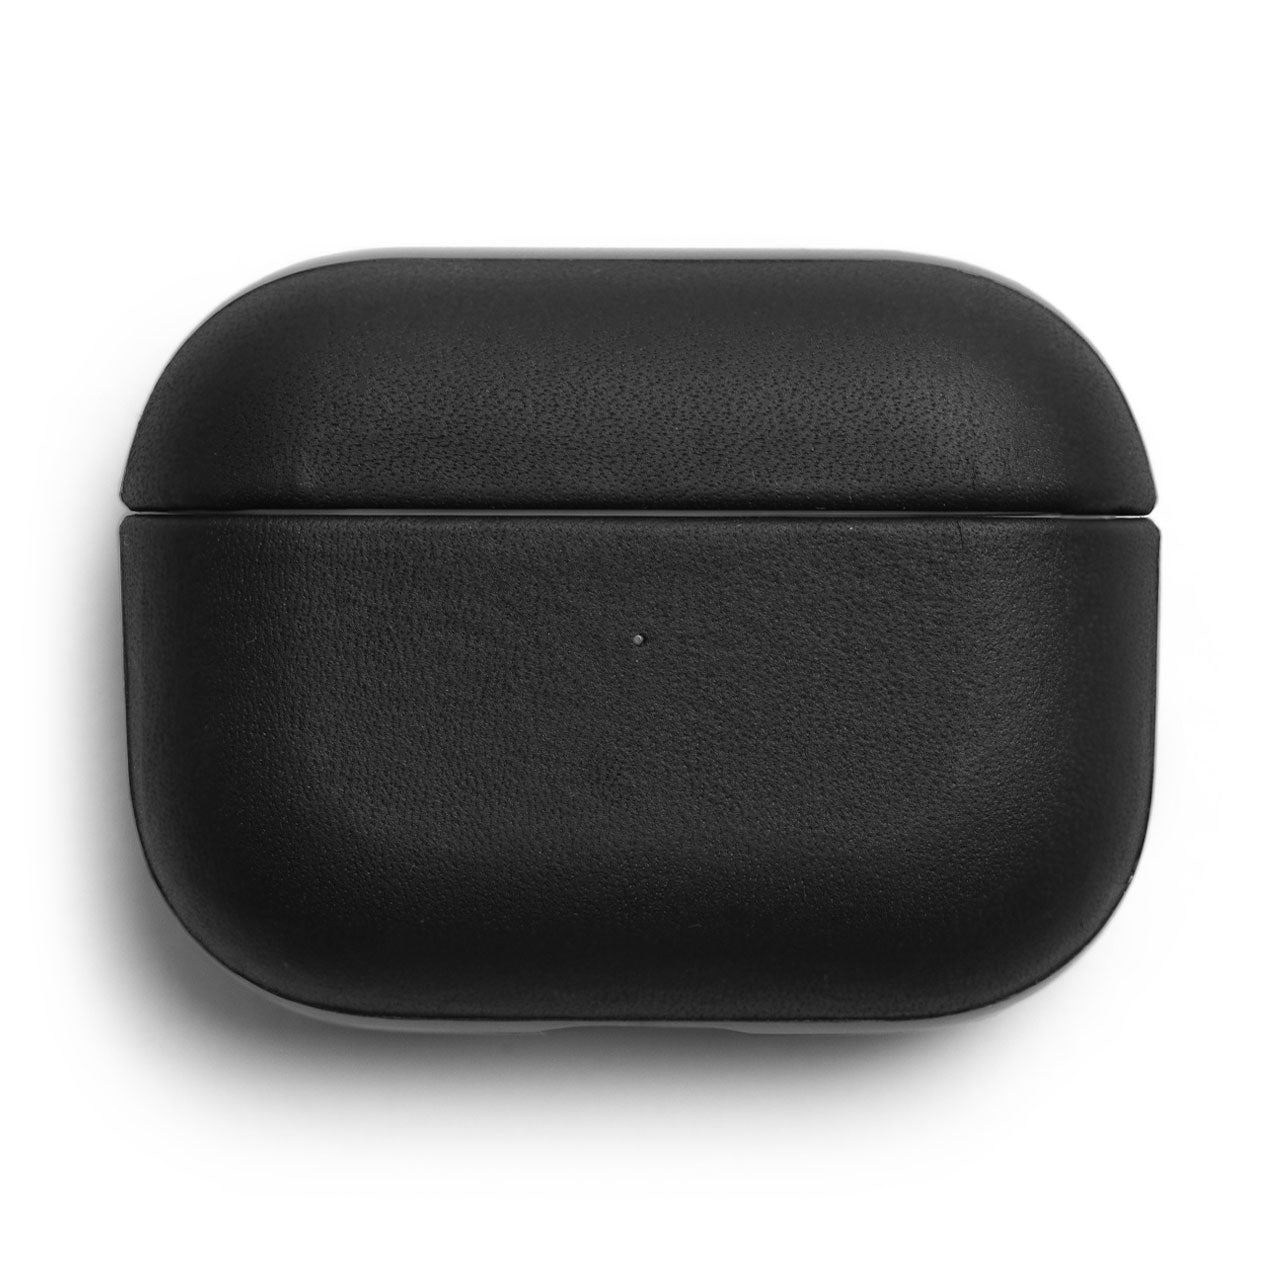 Nomad Active Rugged AirPods Pro Case